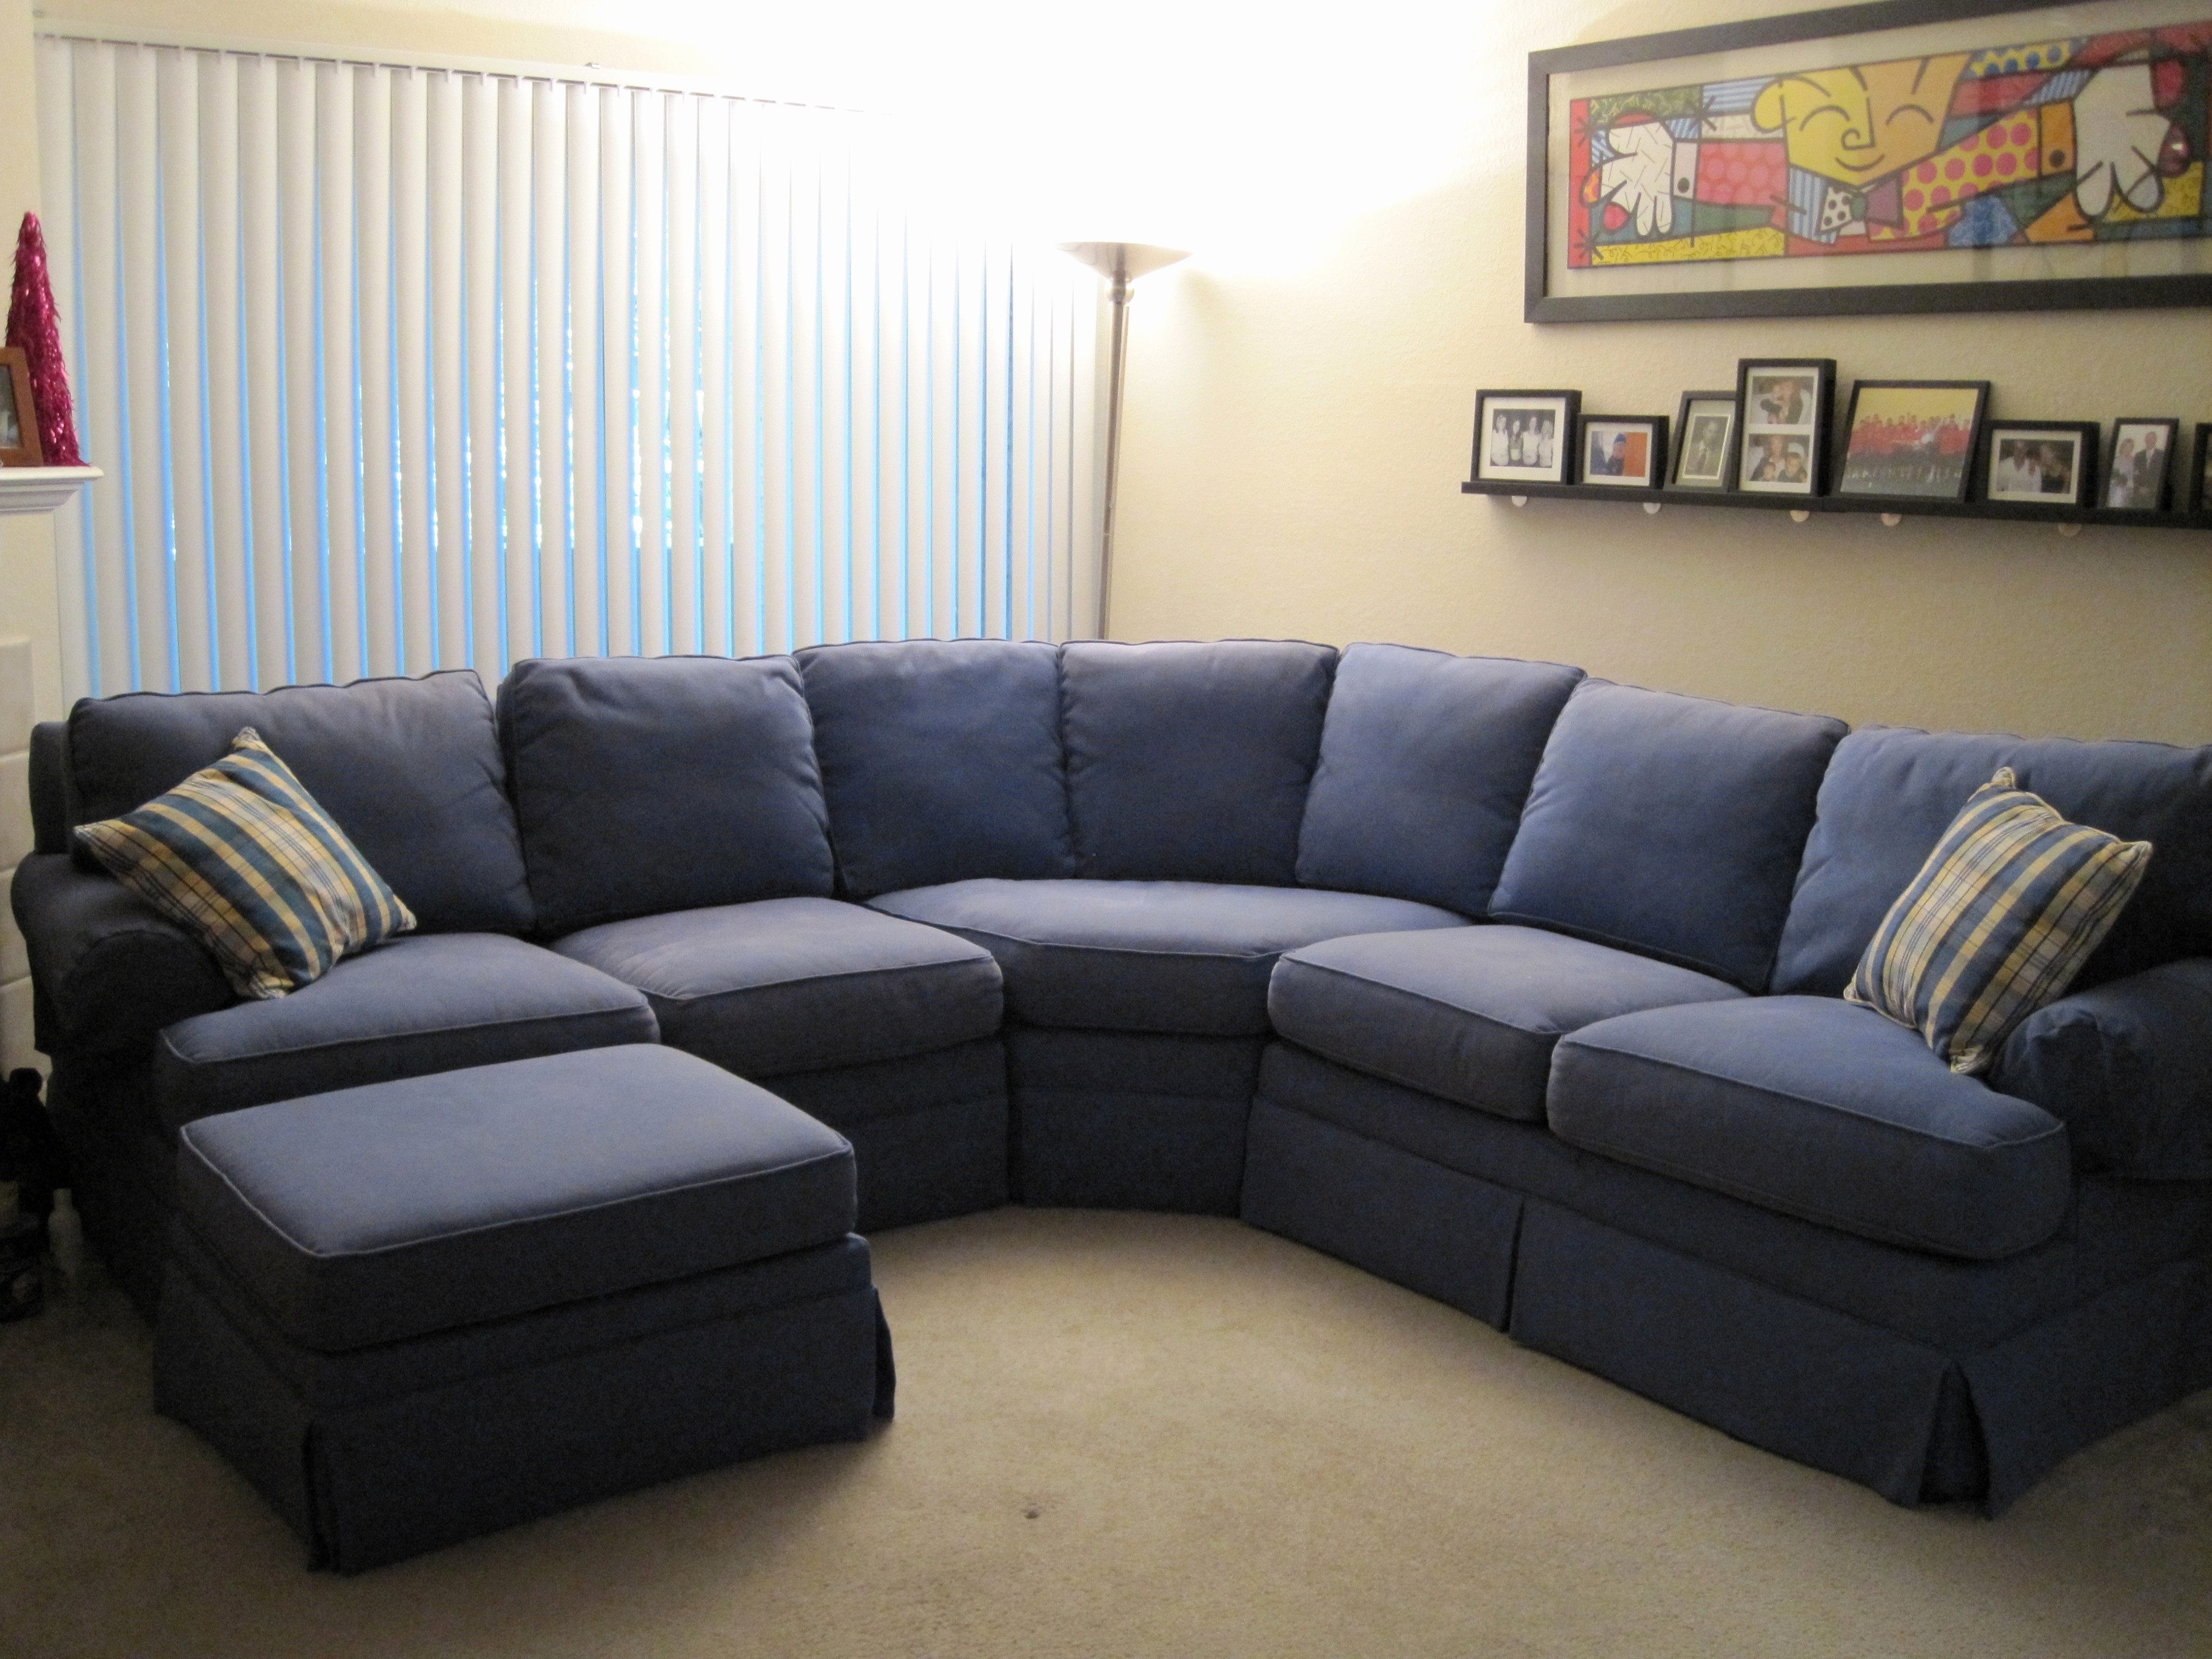 Blue Sectional Sofas With Regard To Preferred Elegant Navy Blue Sectional Sofa 2018 – Couches And Sofas Ideas (View 14 of 20)